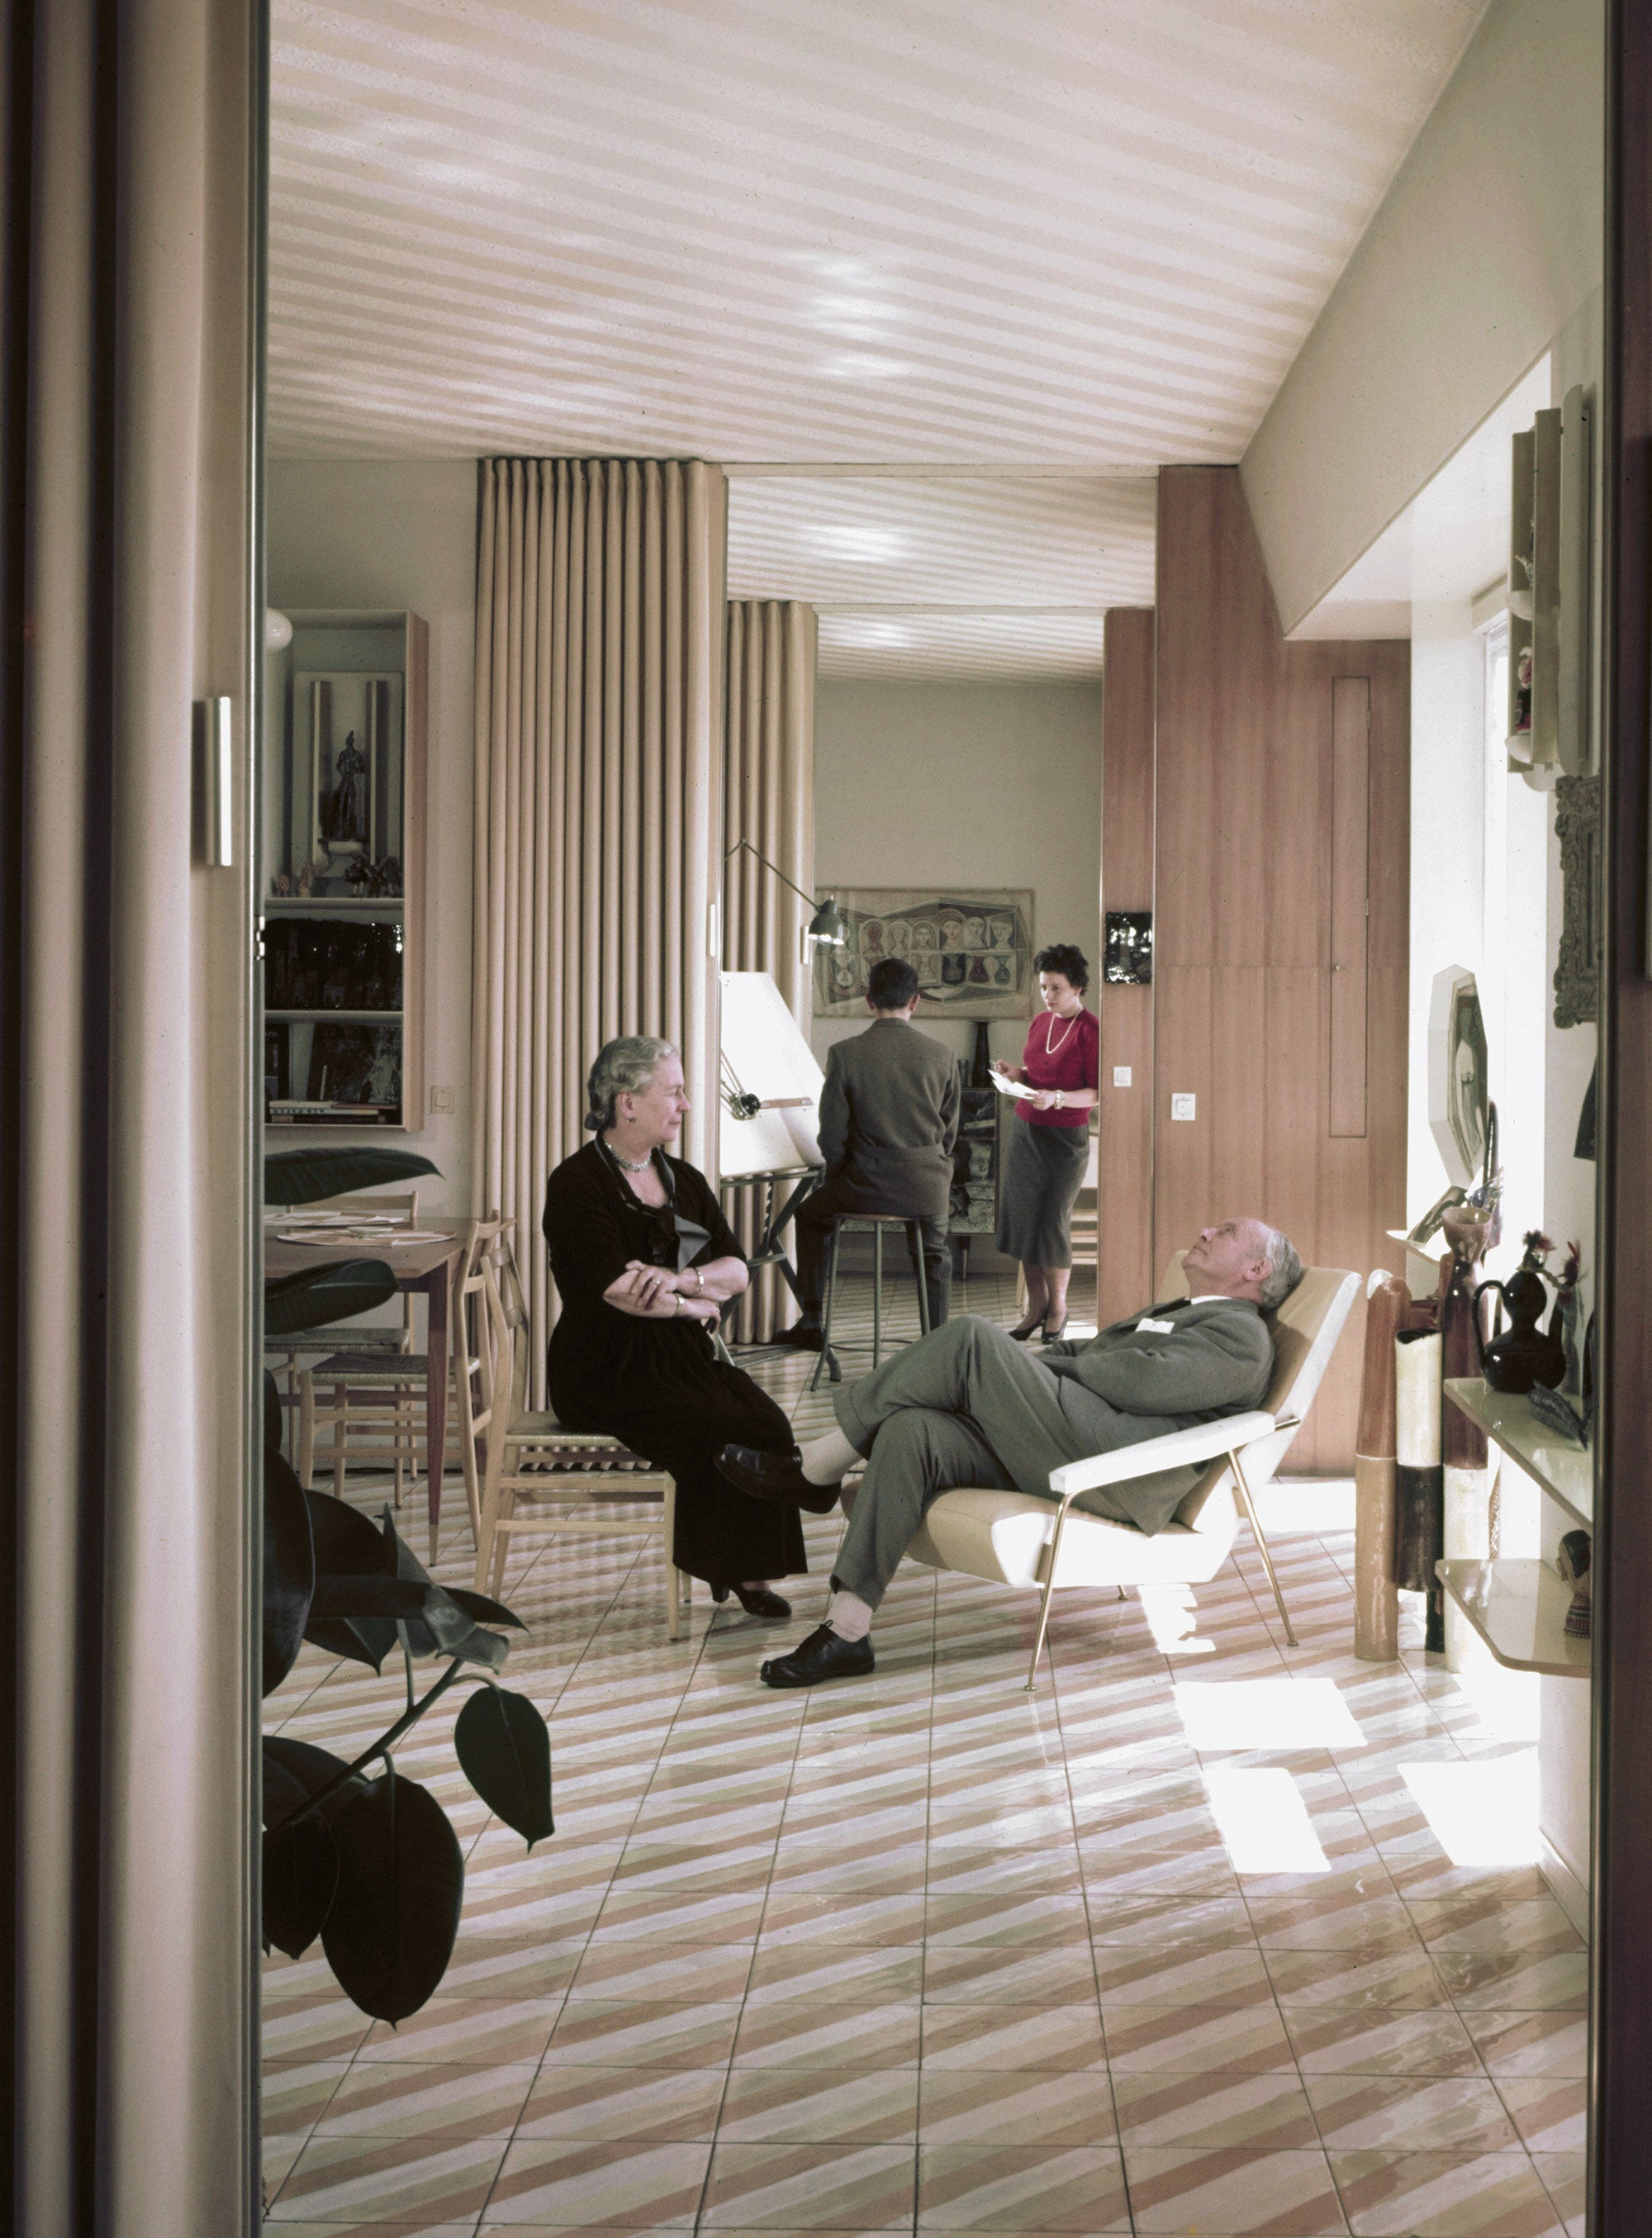 Gio Ponti and his wife Giulia in The Eclectic Life and Work of Gio Ponti for A Collected Man London